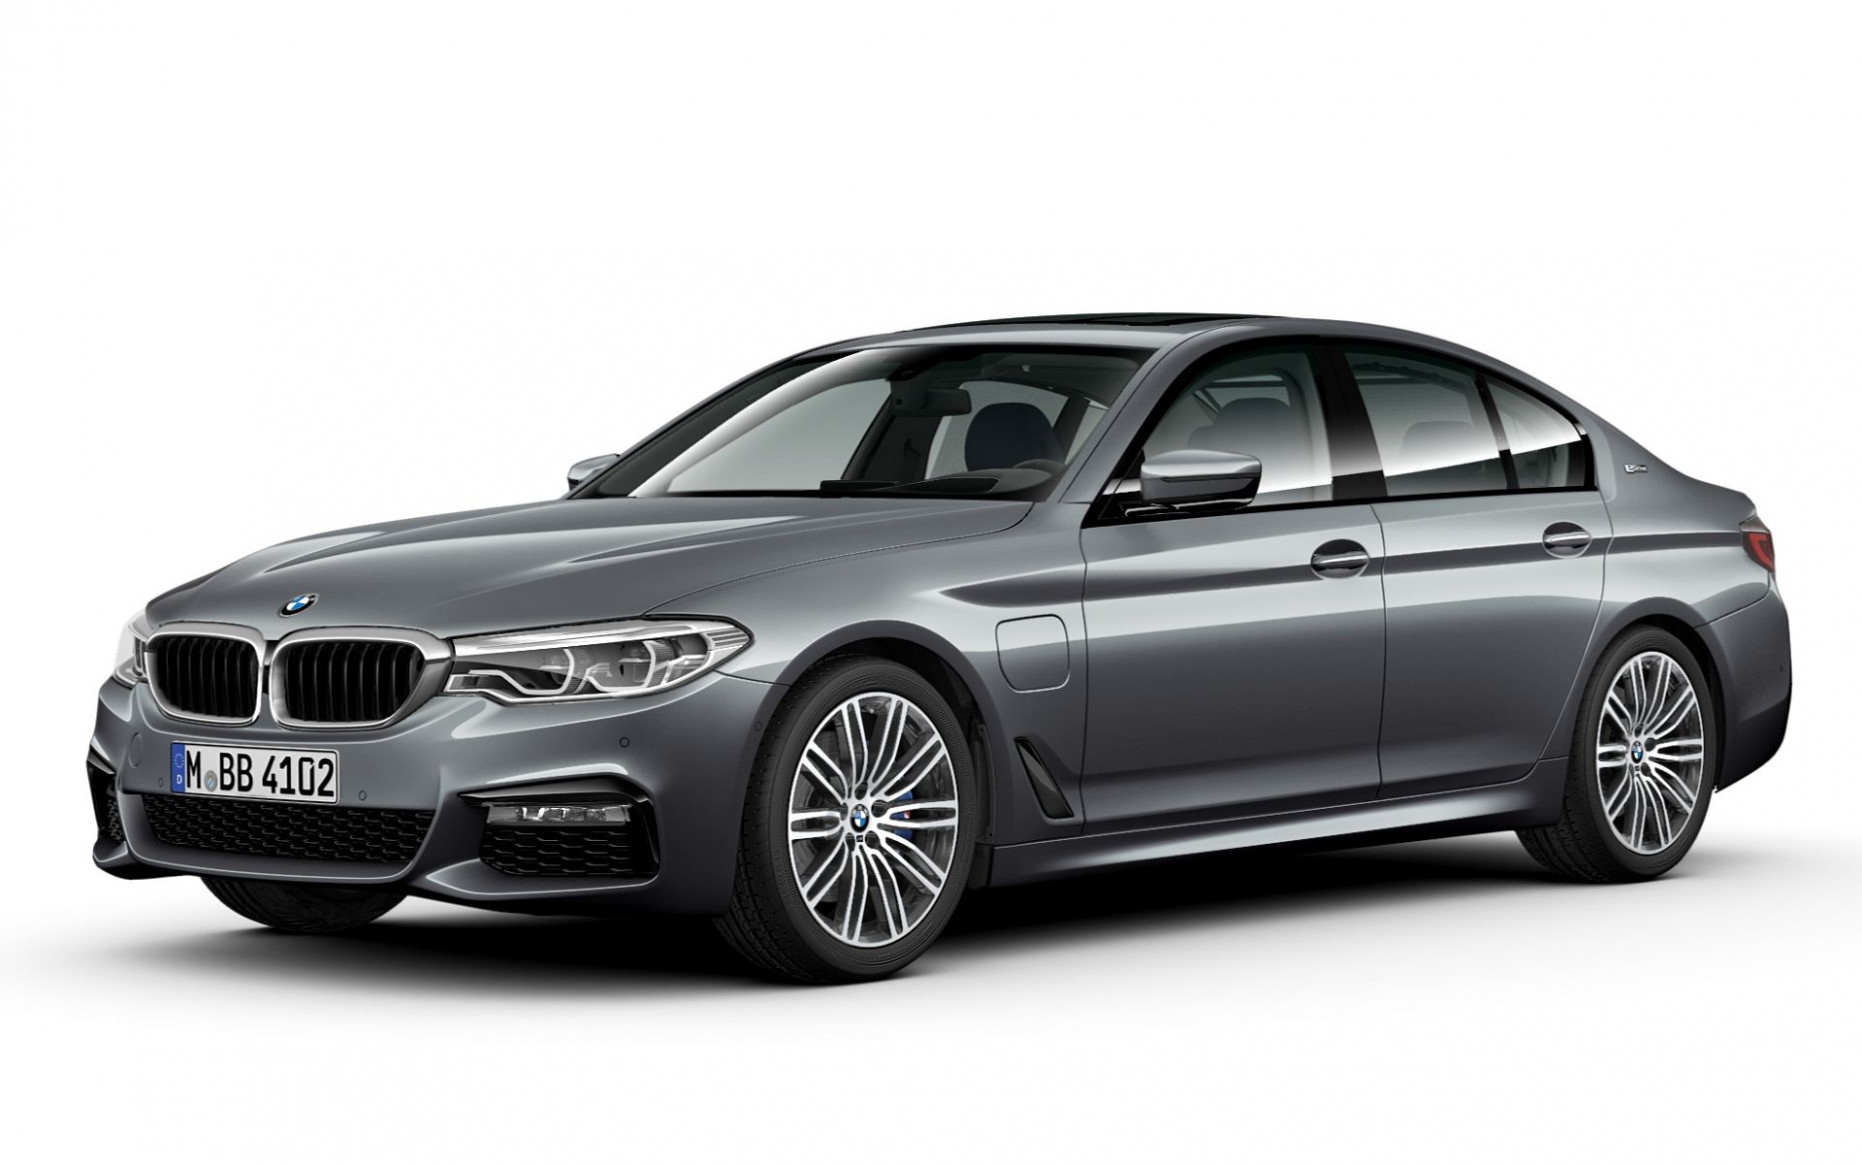 11+ BMW thailand price list 11 Exterior and Interior Review - bmw thailand price list 2020